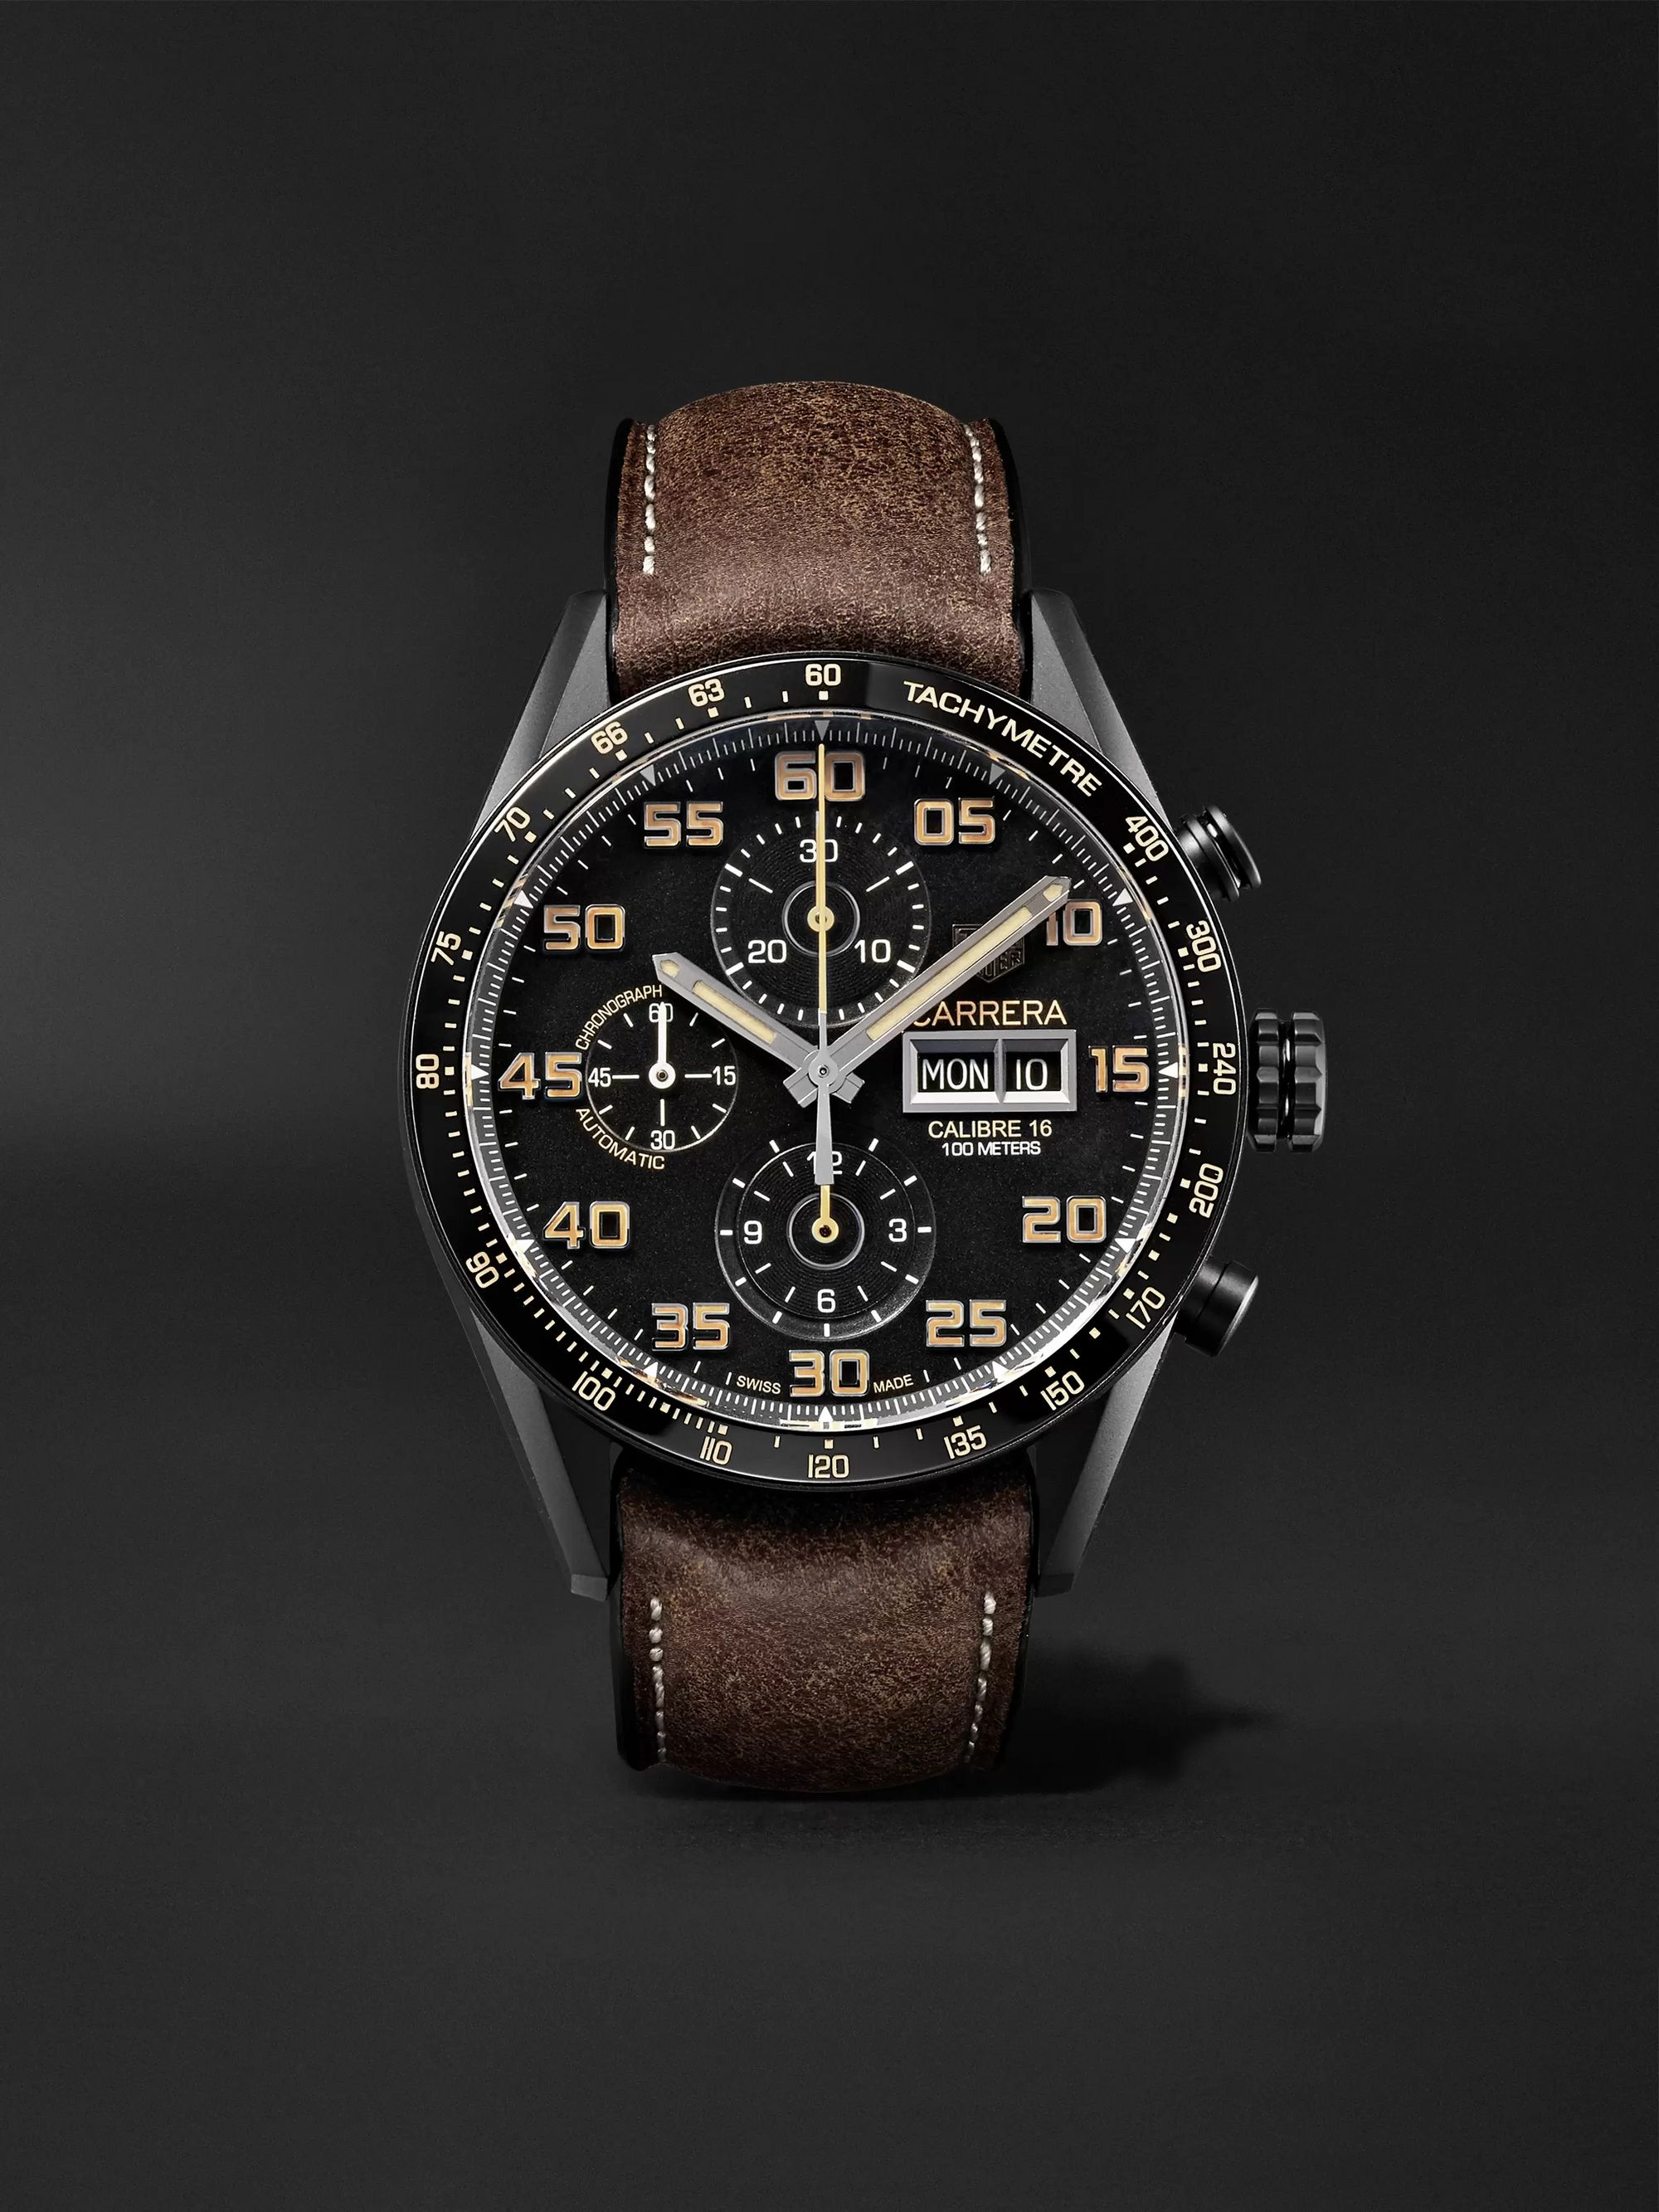 Tag Carrera Watch >> Carrera Automatic Chronograph 45mm Titanium And Leather Watch Ref No Cv2a84 Fc6394